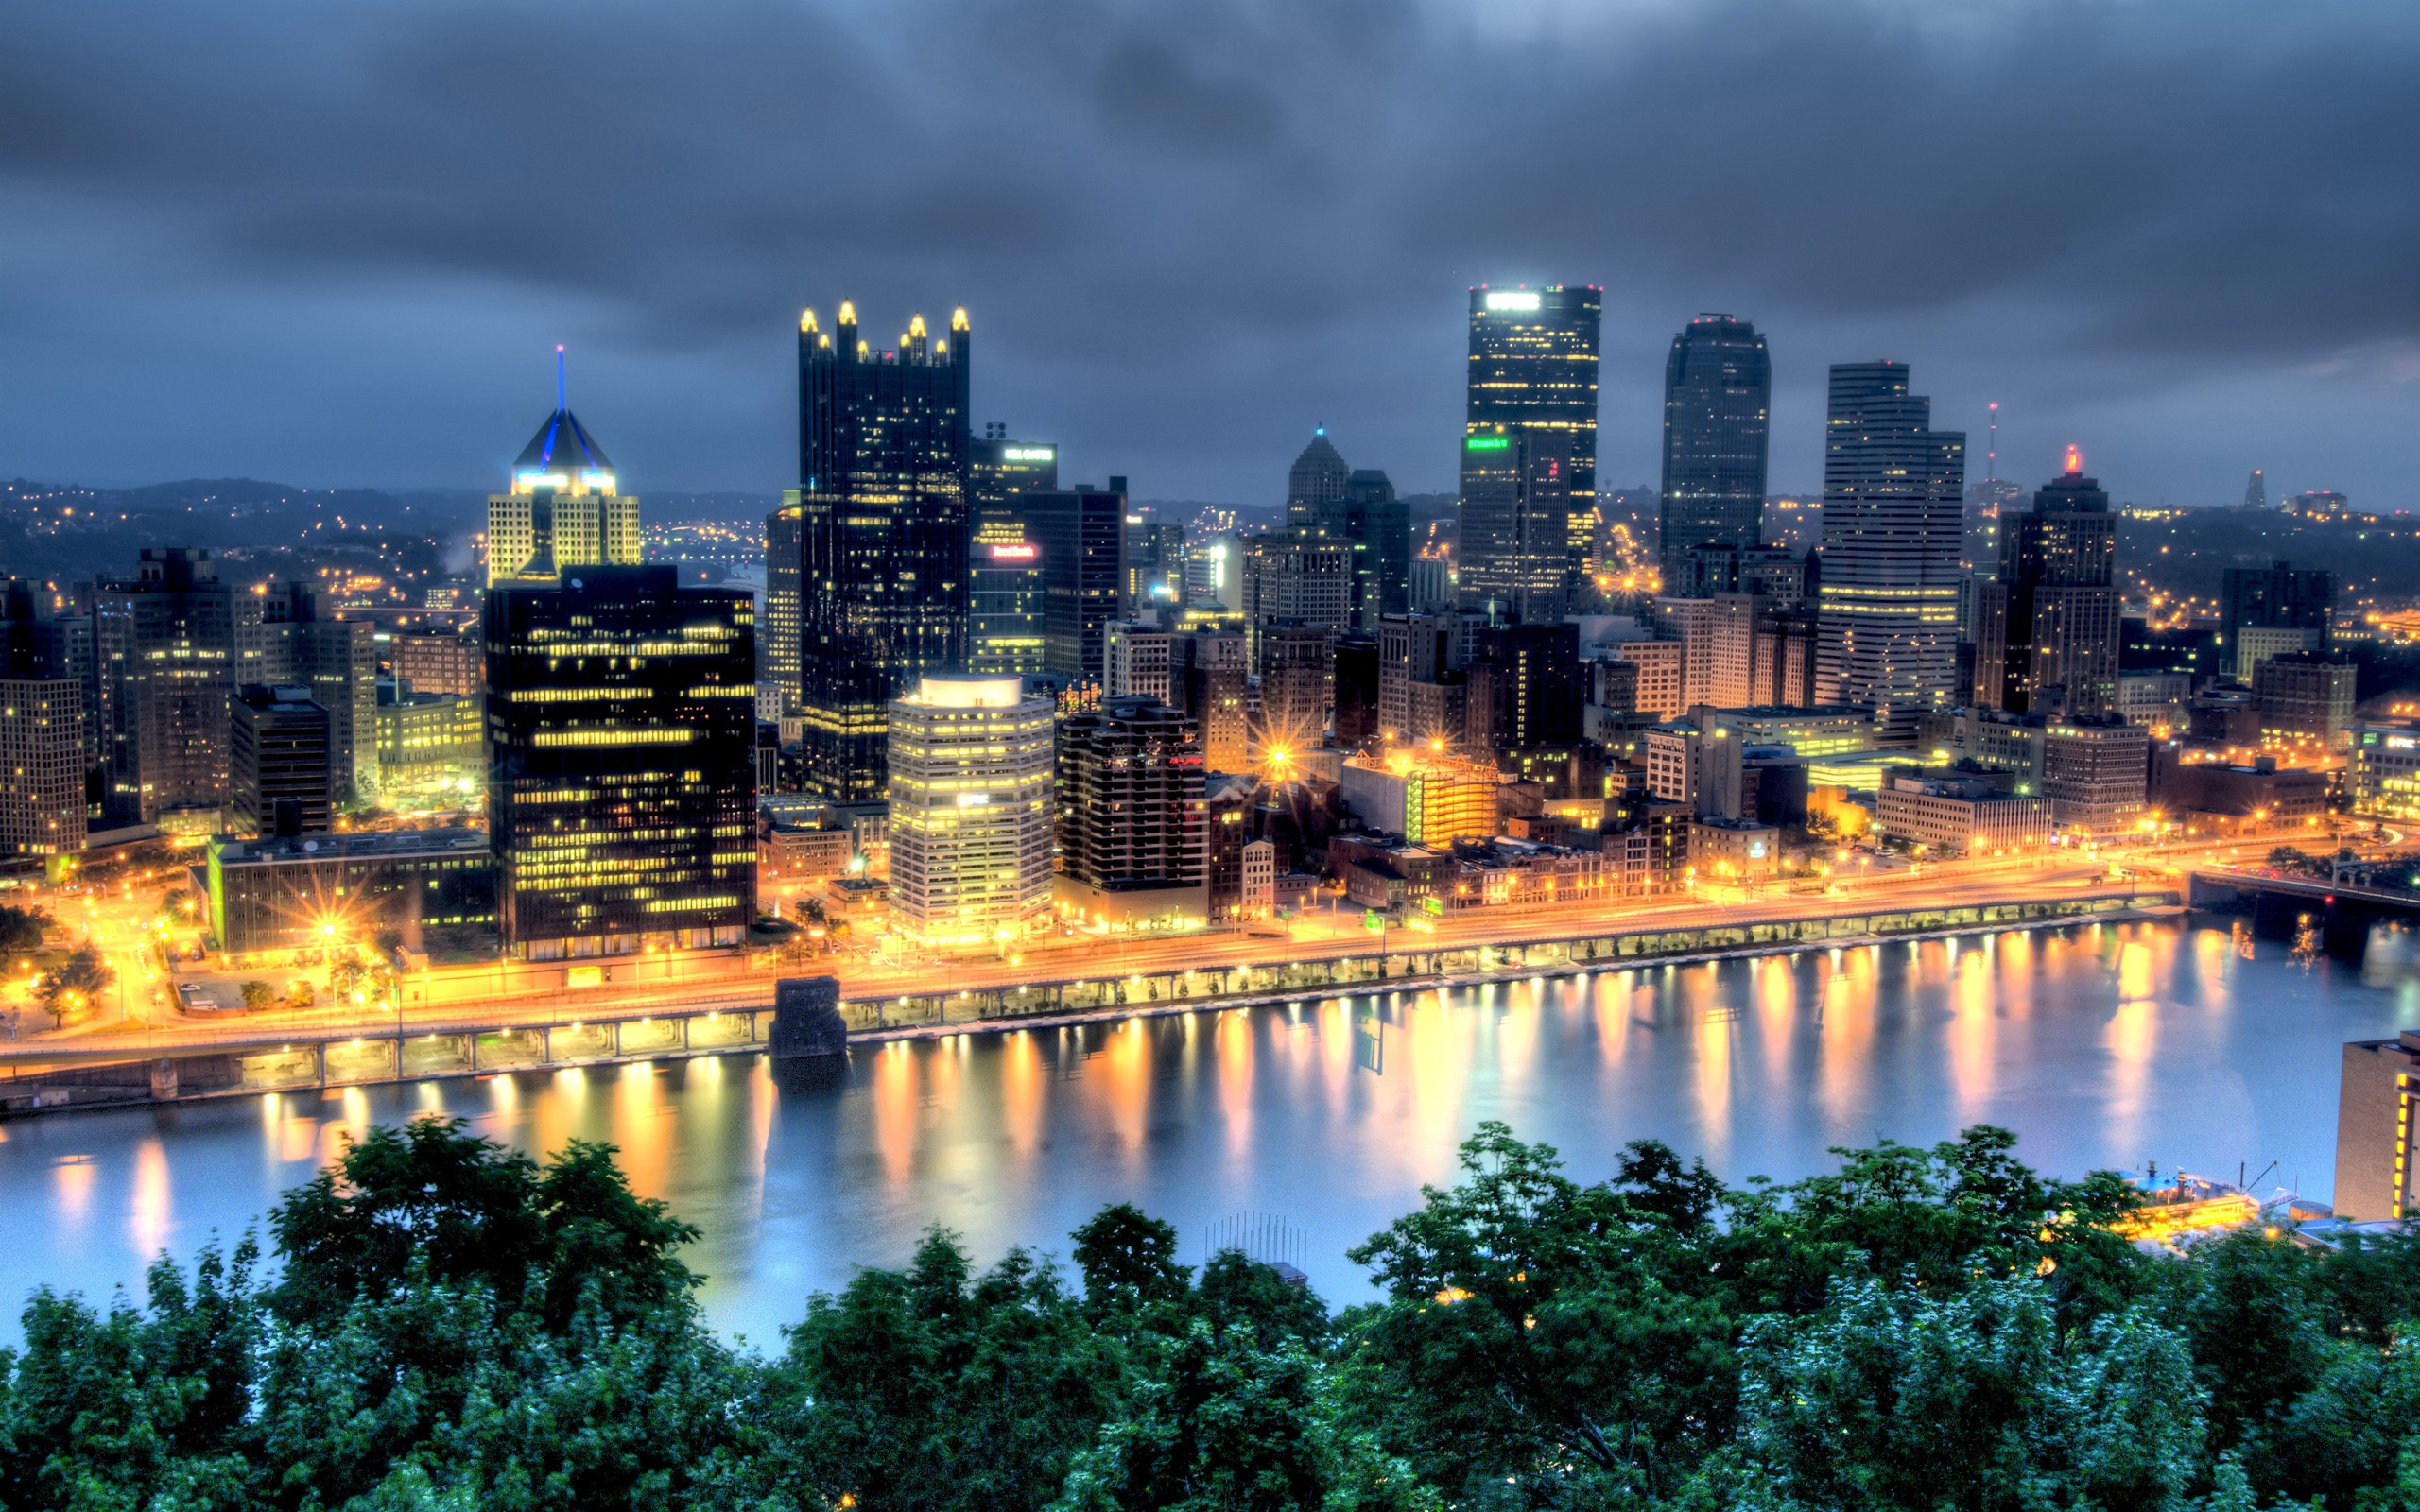 Pittsburgh in Dark Wallpapers   2560x1600   1592330 2560x1600